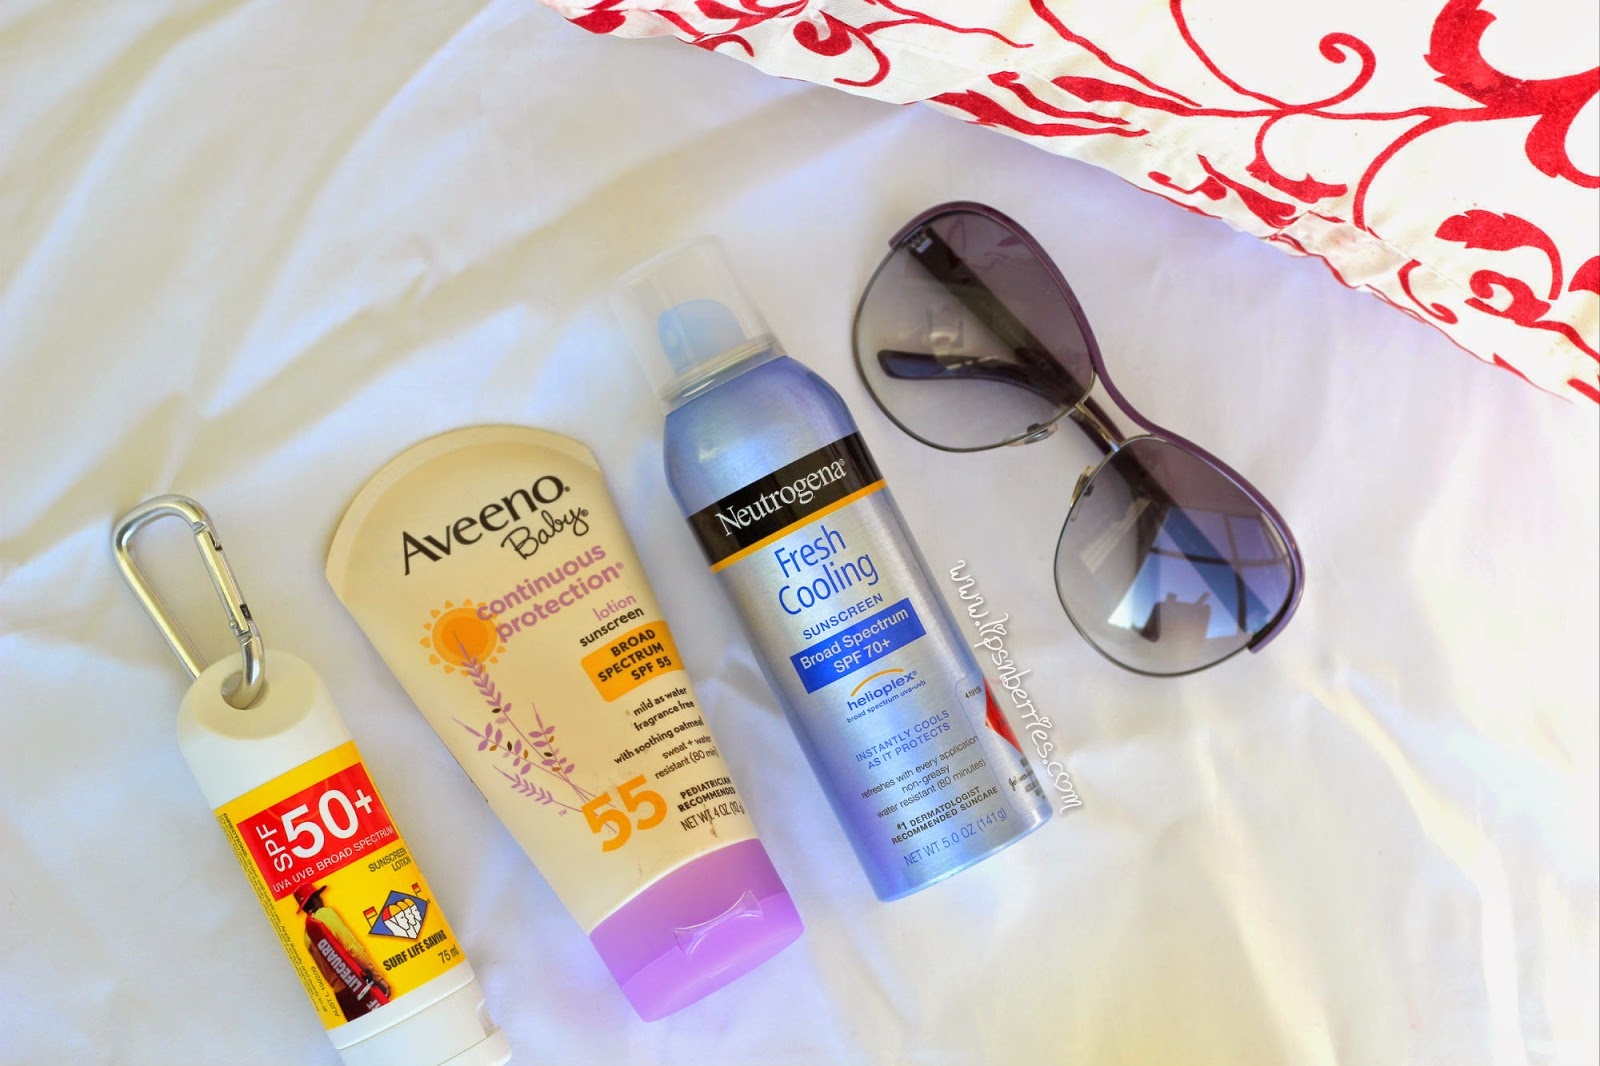 Aveeno baby sunscreen review